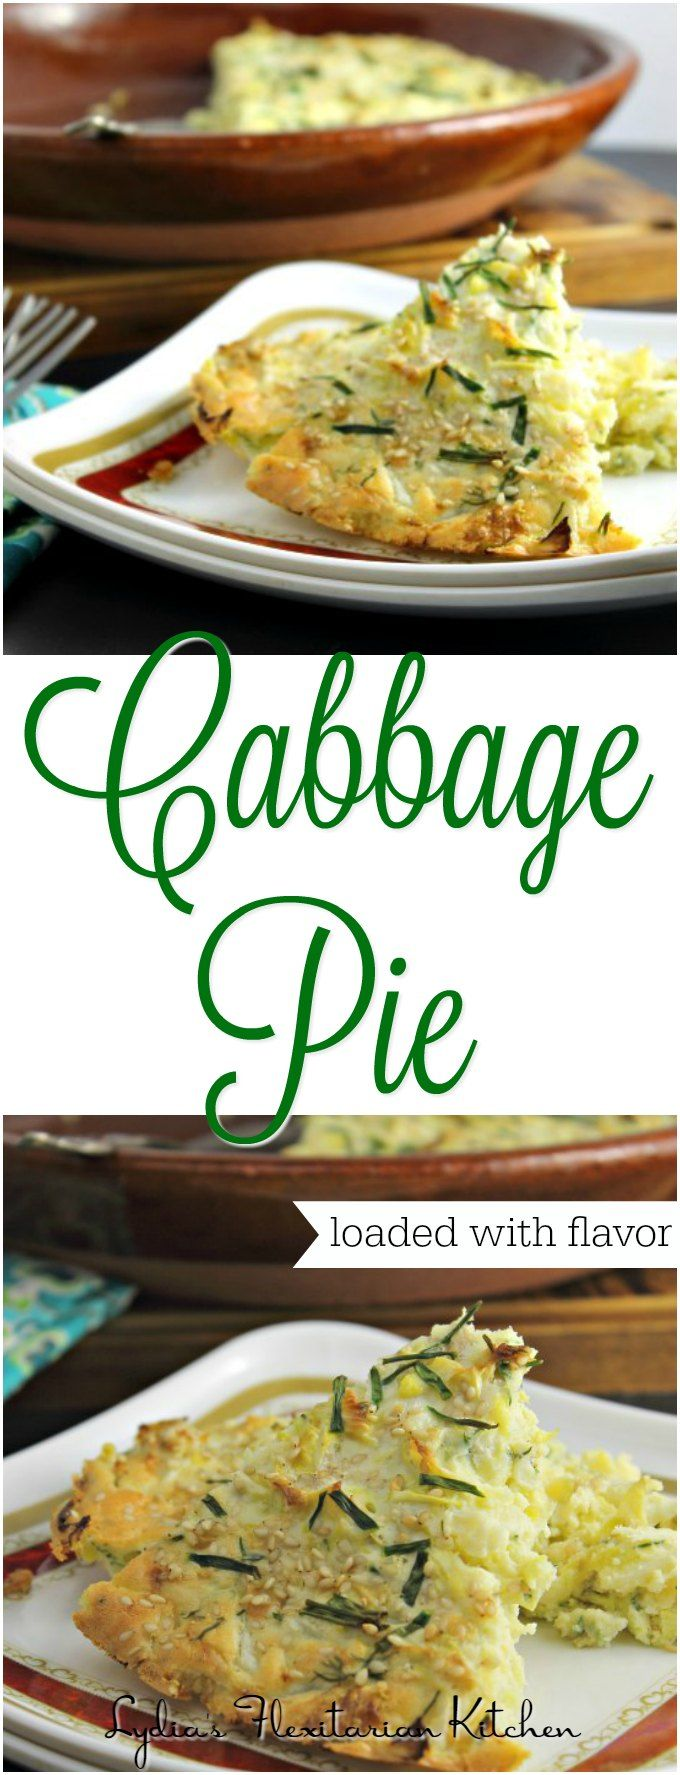 Cabbage, onions and dill baked together with a simple batter make this fabulous cabbage pie. The flavor can't be beat! You'll love it!